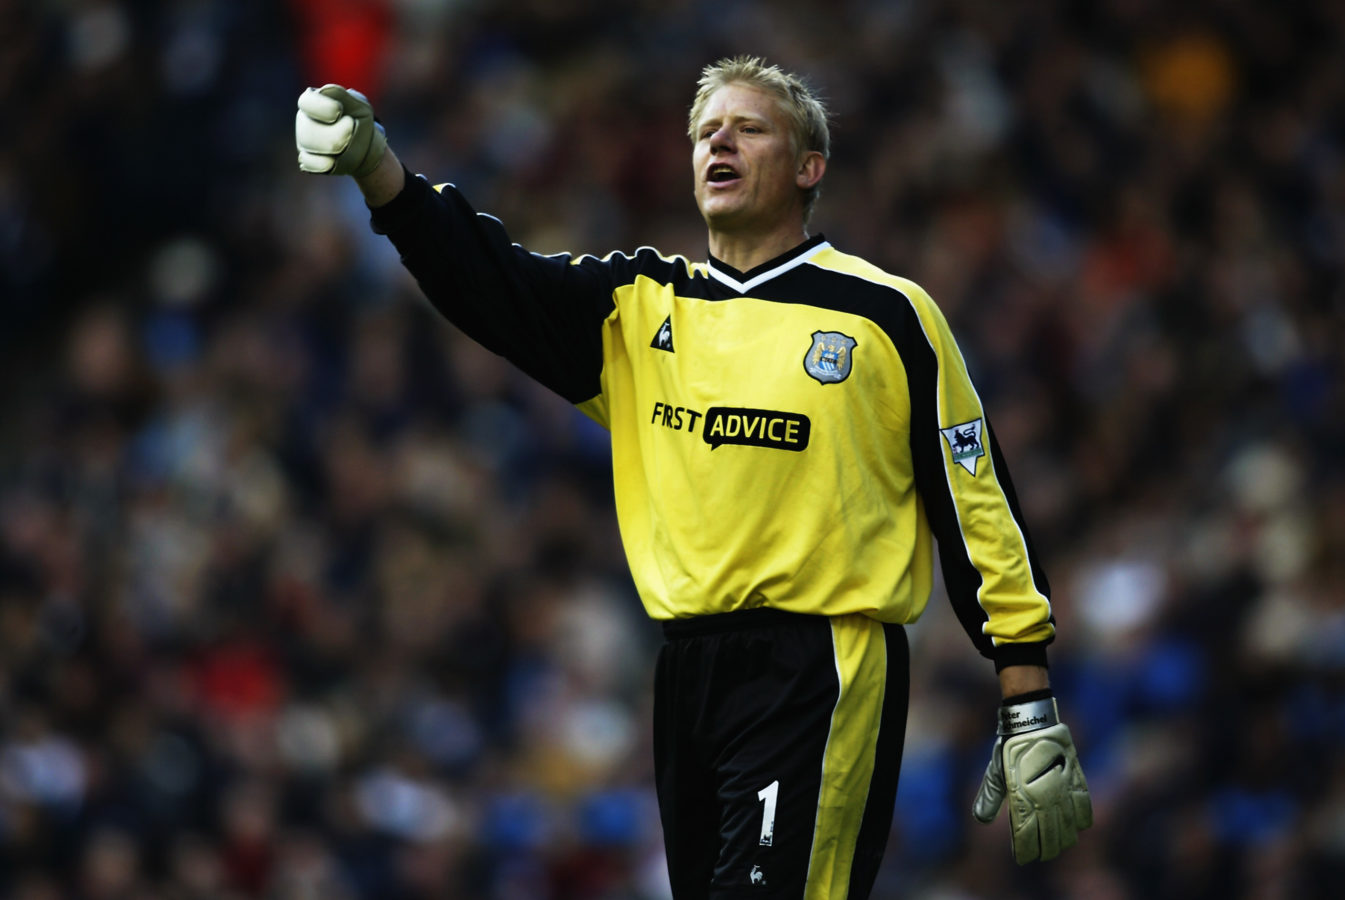 9051077d584 While Peter Schmeichel joined Manchester City also his son Kasper joined  the team. It was September 2002 when his son signed a long-term contract